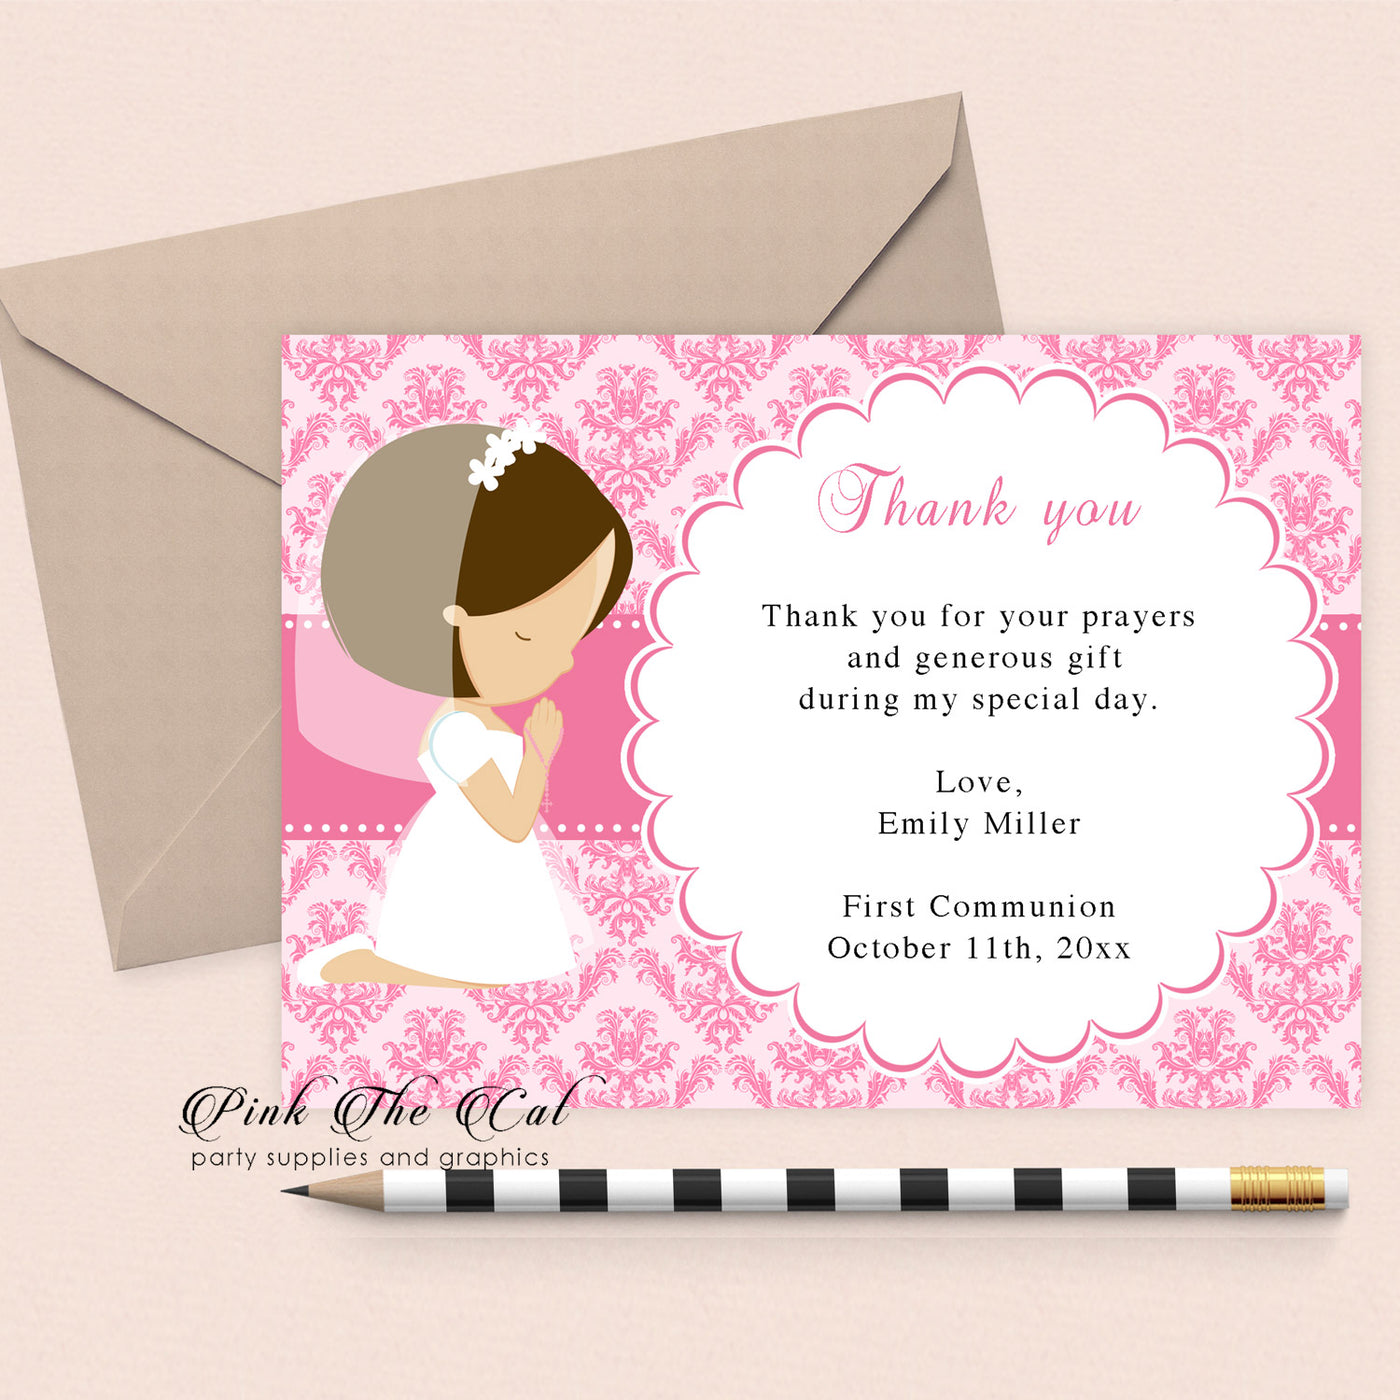 30 Religious Thank You Cards Girl Praying Pink Pink The Cat